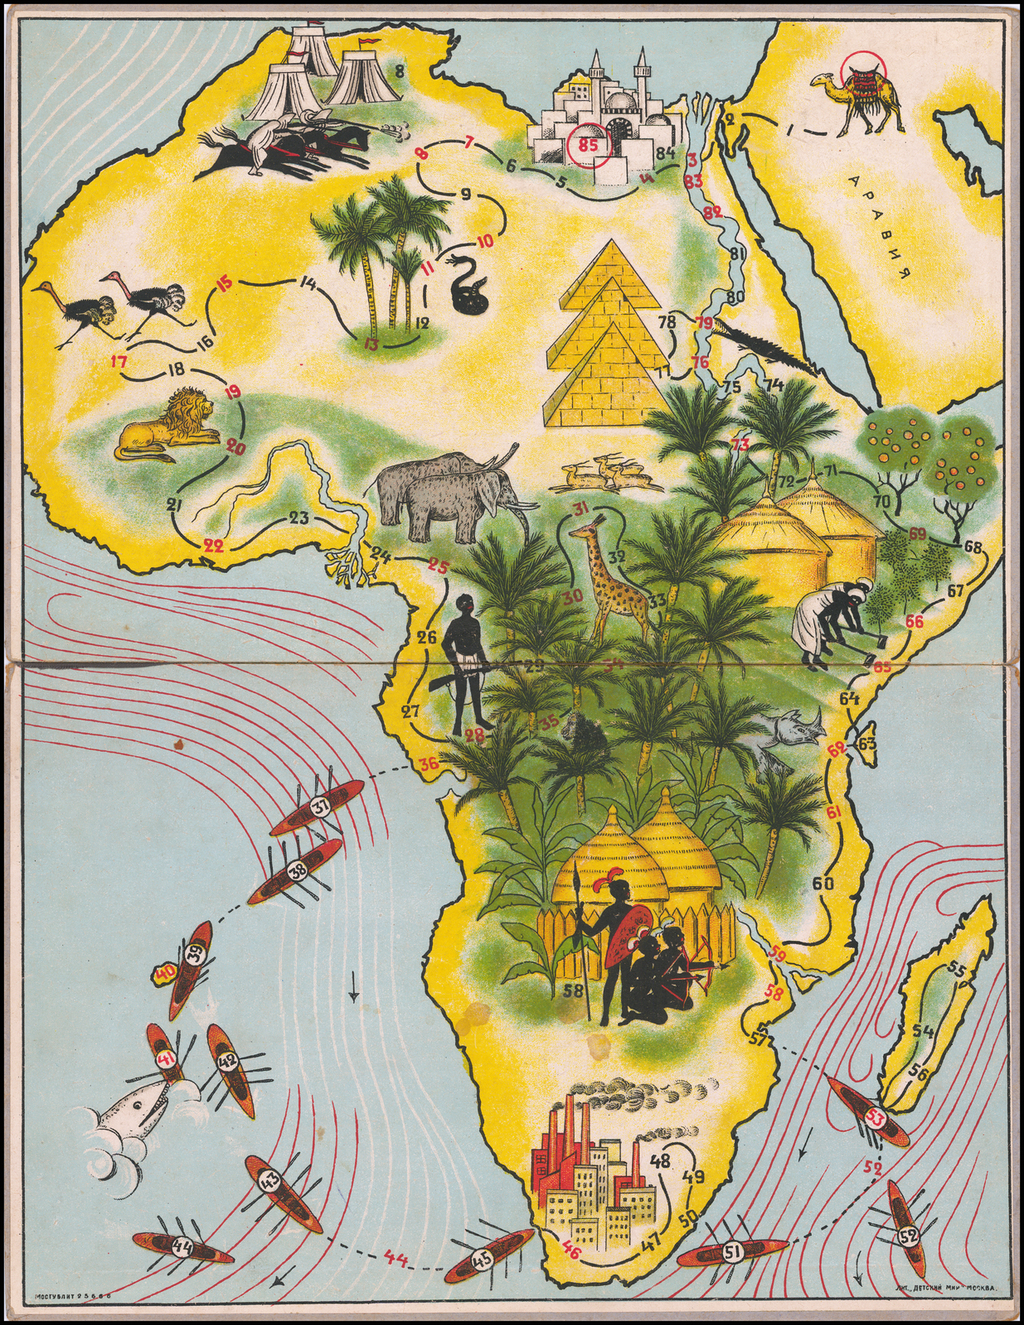 [Russian Geographical Game of Africa] Путешествие по Африке. By Anonymous